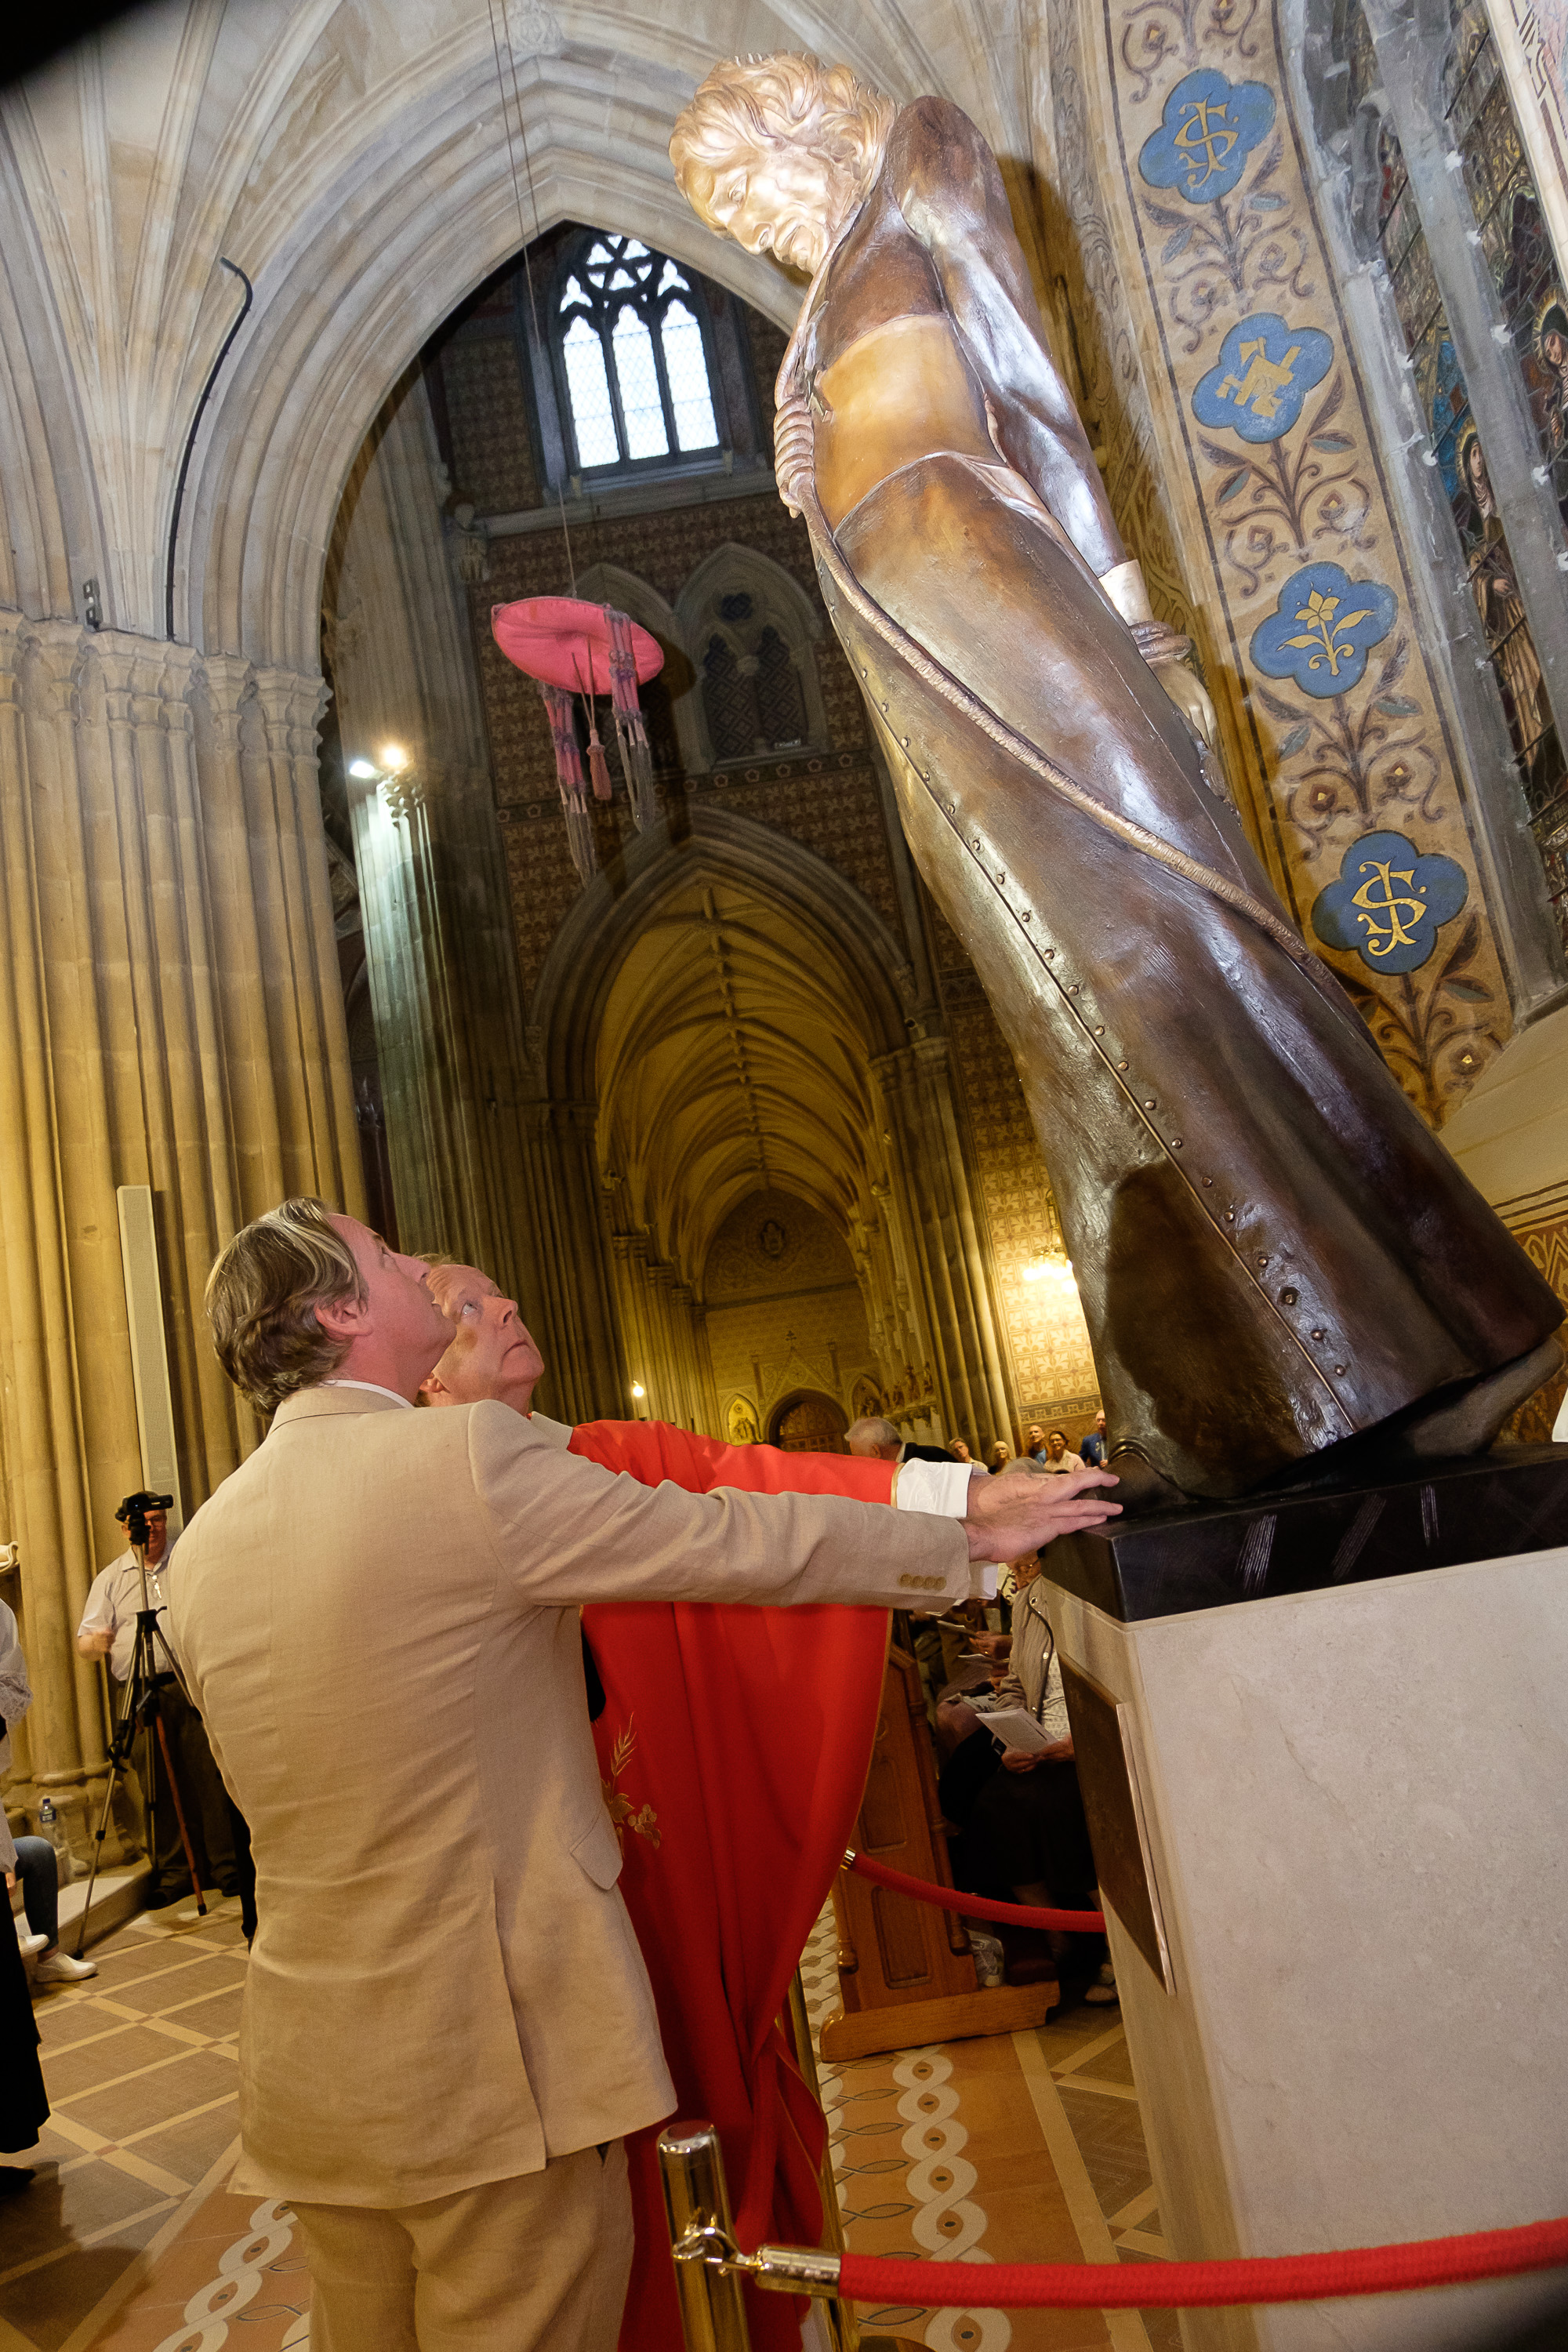 Archbishop Eamon Martin, with the sculptor Dony MacManus, unveils the new statue of St Oliver Plunkett in St Patrick's Cathedral Unveiling of St Oliver Plunkett StatueSt Patrick's Cathedral  Armagh Co.Armagh 9 July 2019CREDIT: LiamMcArdle.com